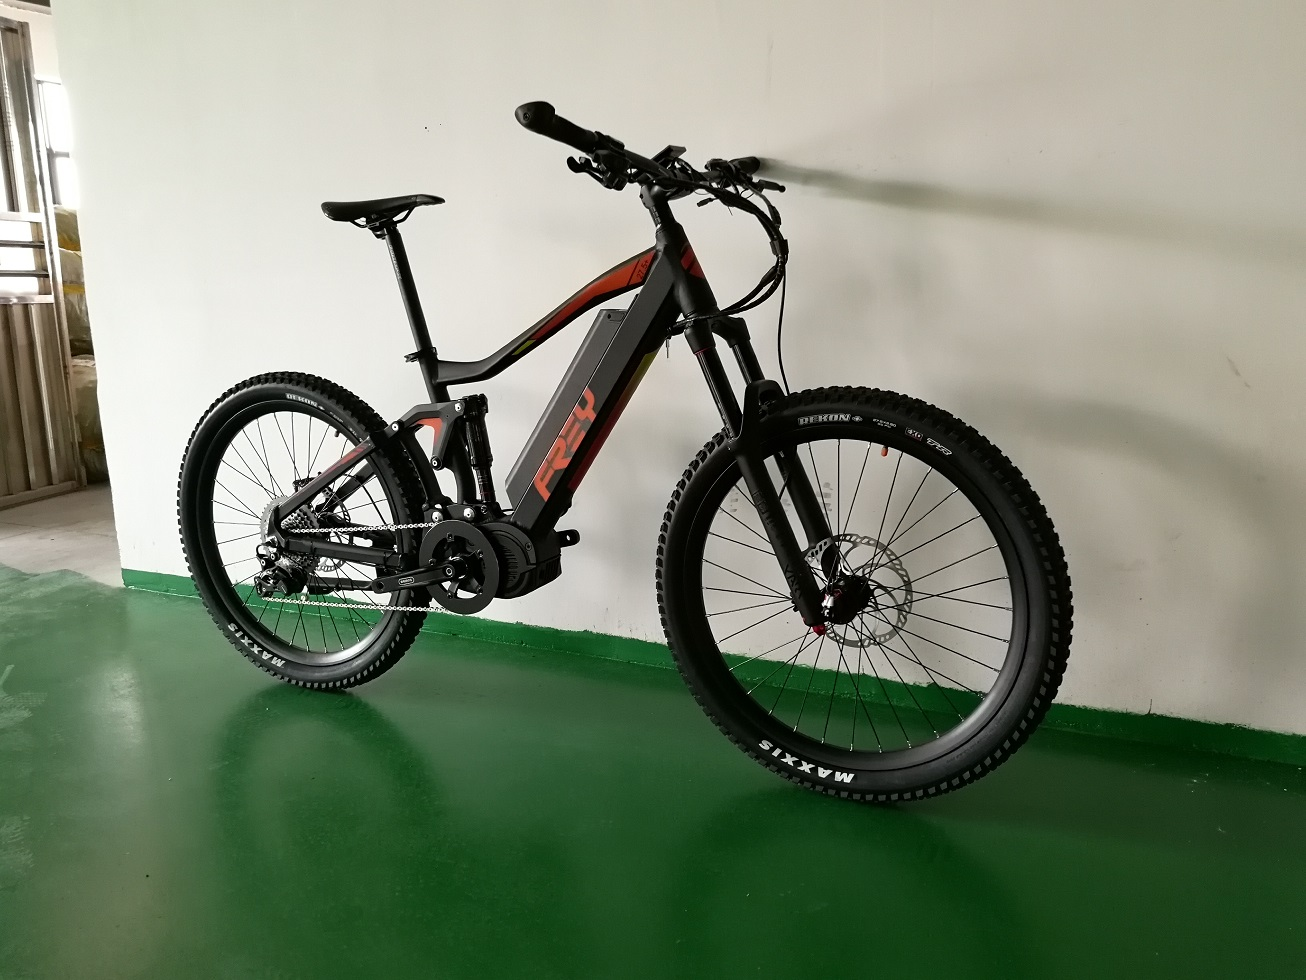 FREY AM1000 full suspension 160mm travel electric mountain bicycle 1000W mid drive motor system